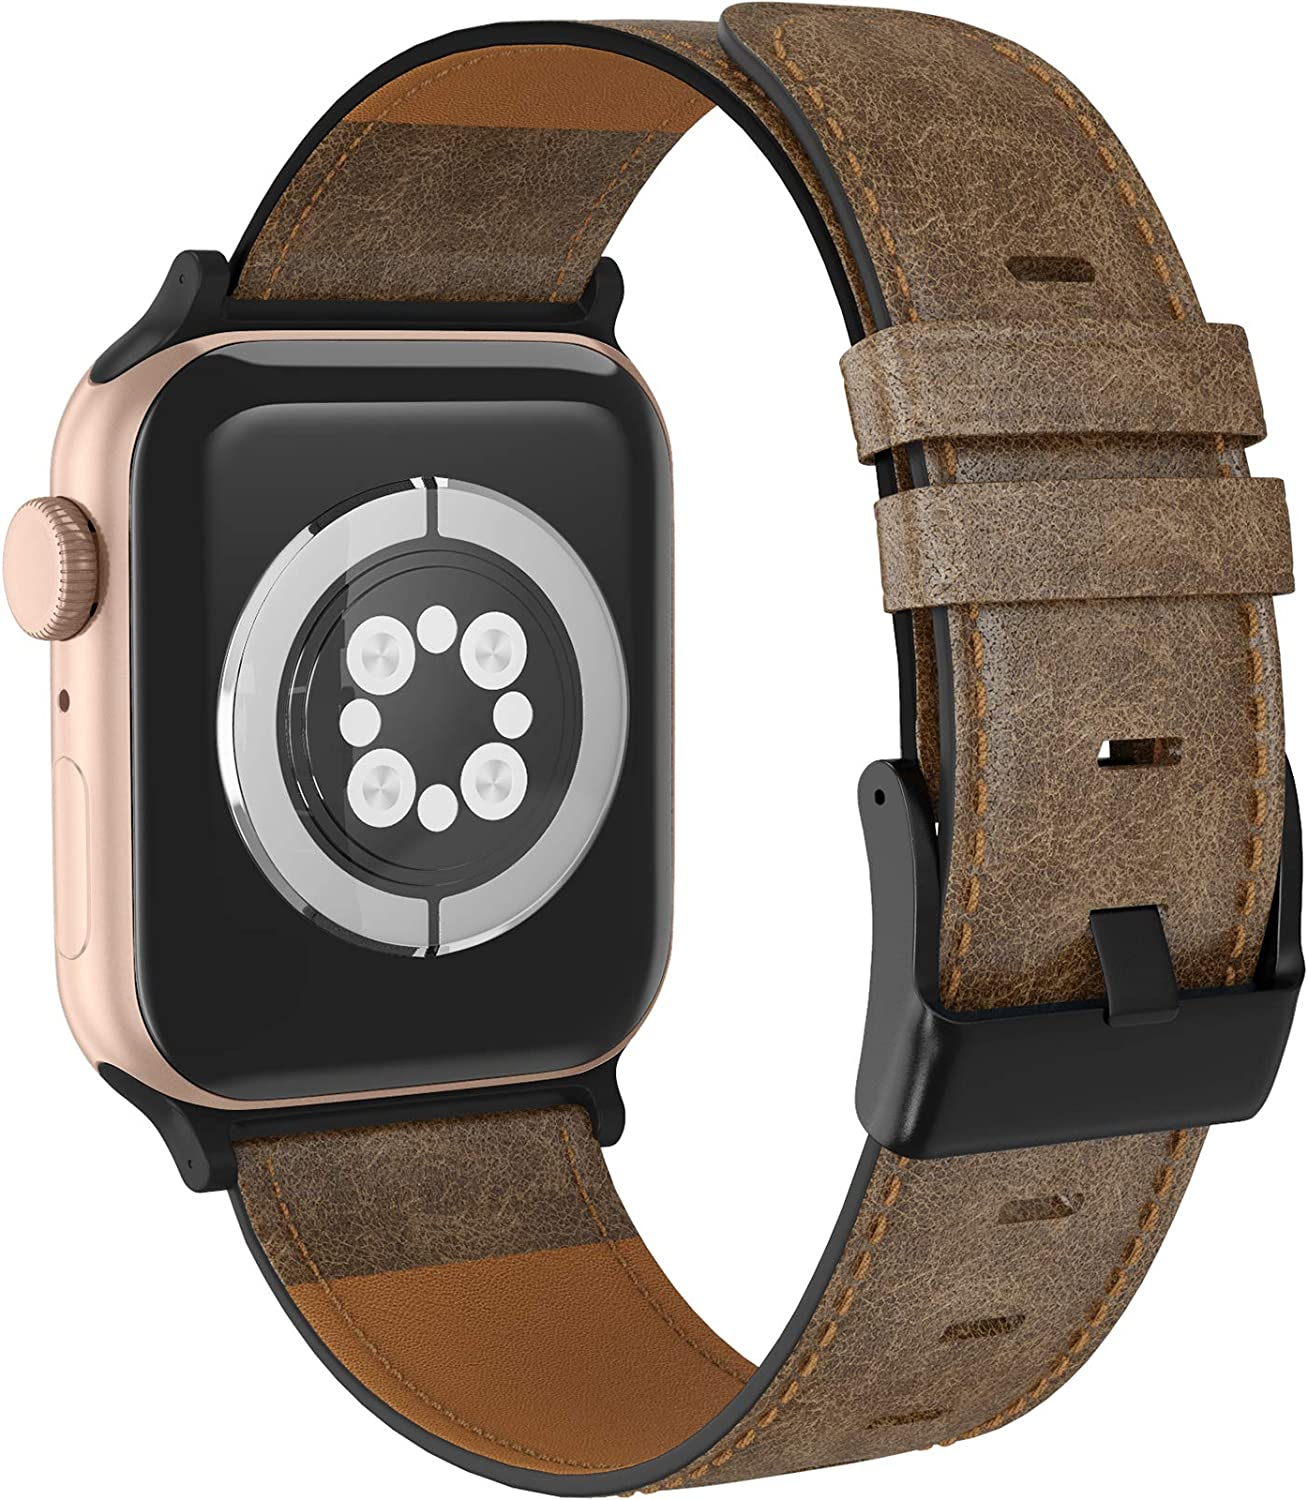 LORDSON Leather Band Compatible with Apple Watch Band 38mm 40mm, Vintage Genuine Replacement Watch Strap Wristband Man Women Compatible with iWatch Series SE 6/5/4/3/2/1